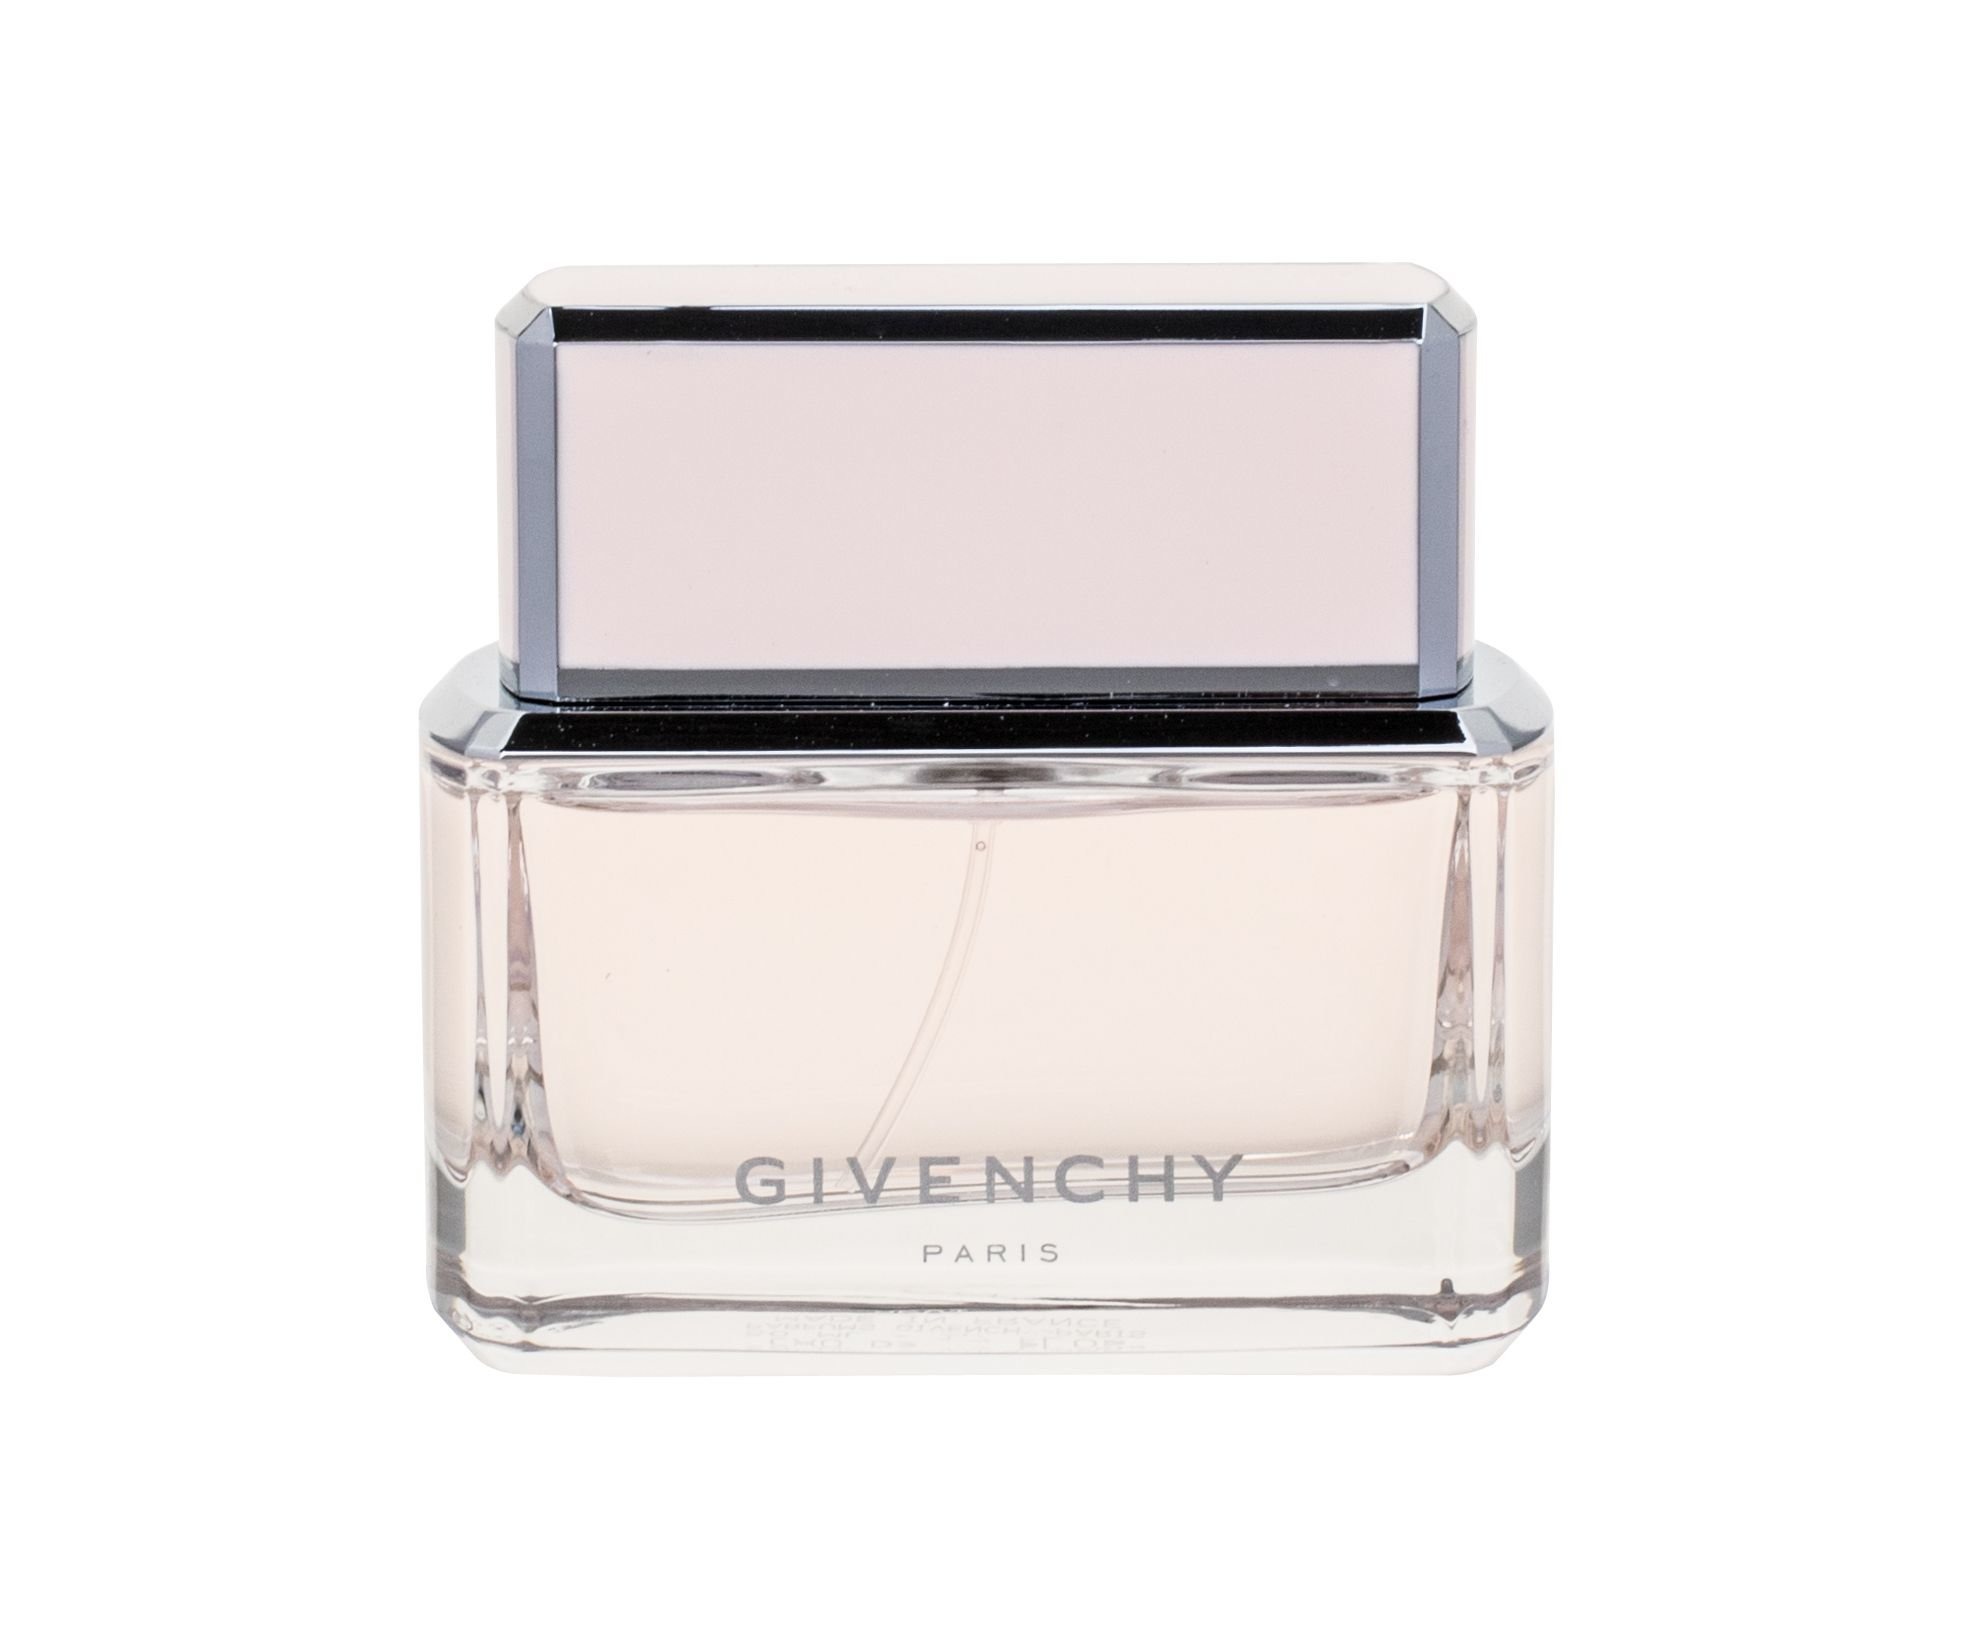 Givenchy Dahlia Noir EDT 50ml